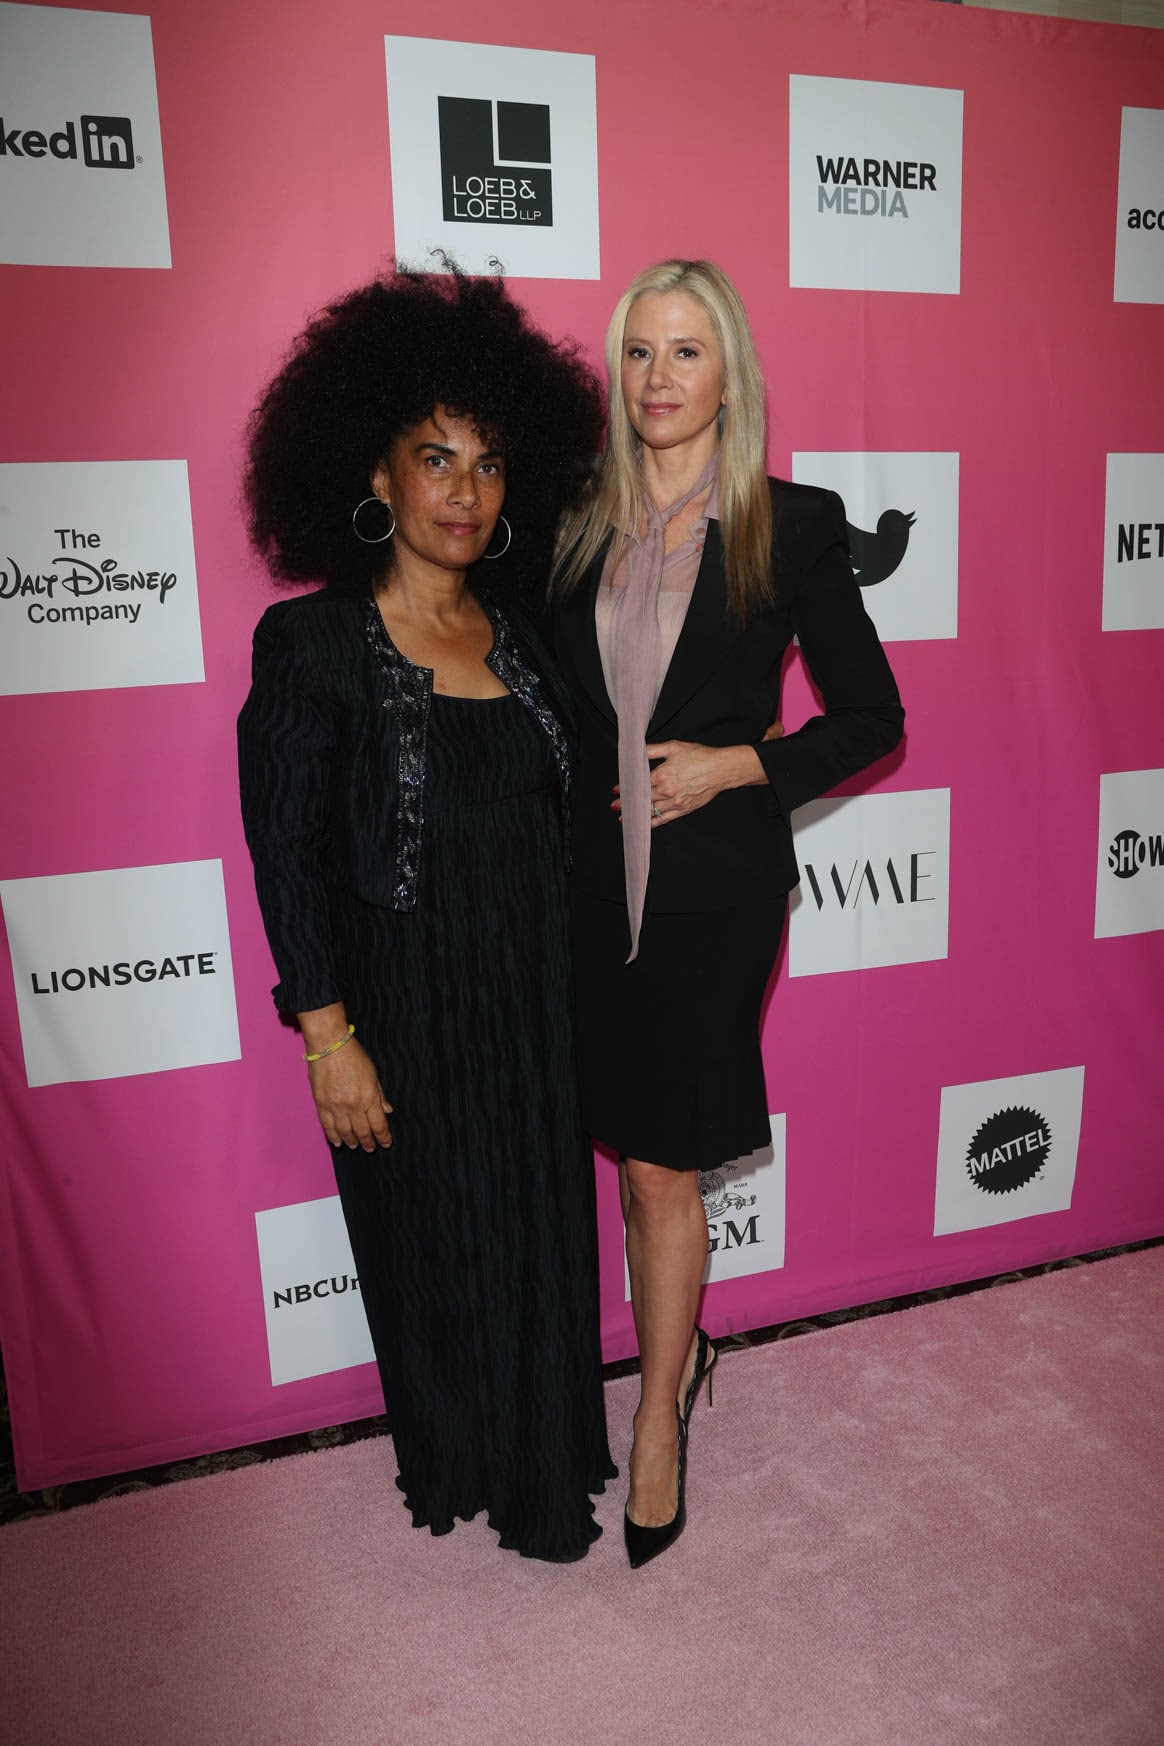 Lili Bernard and Mira Sorvino at the Power Women Summit 2019